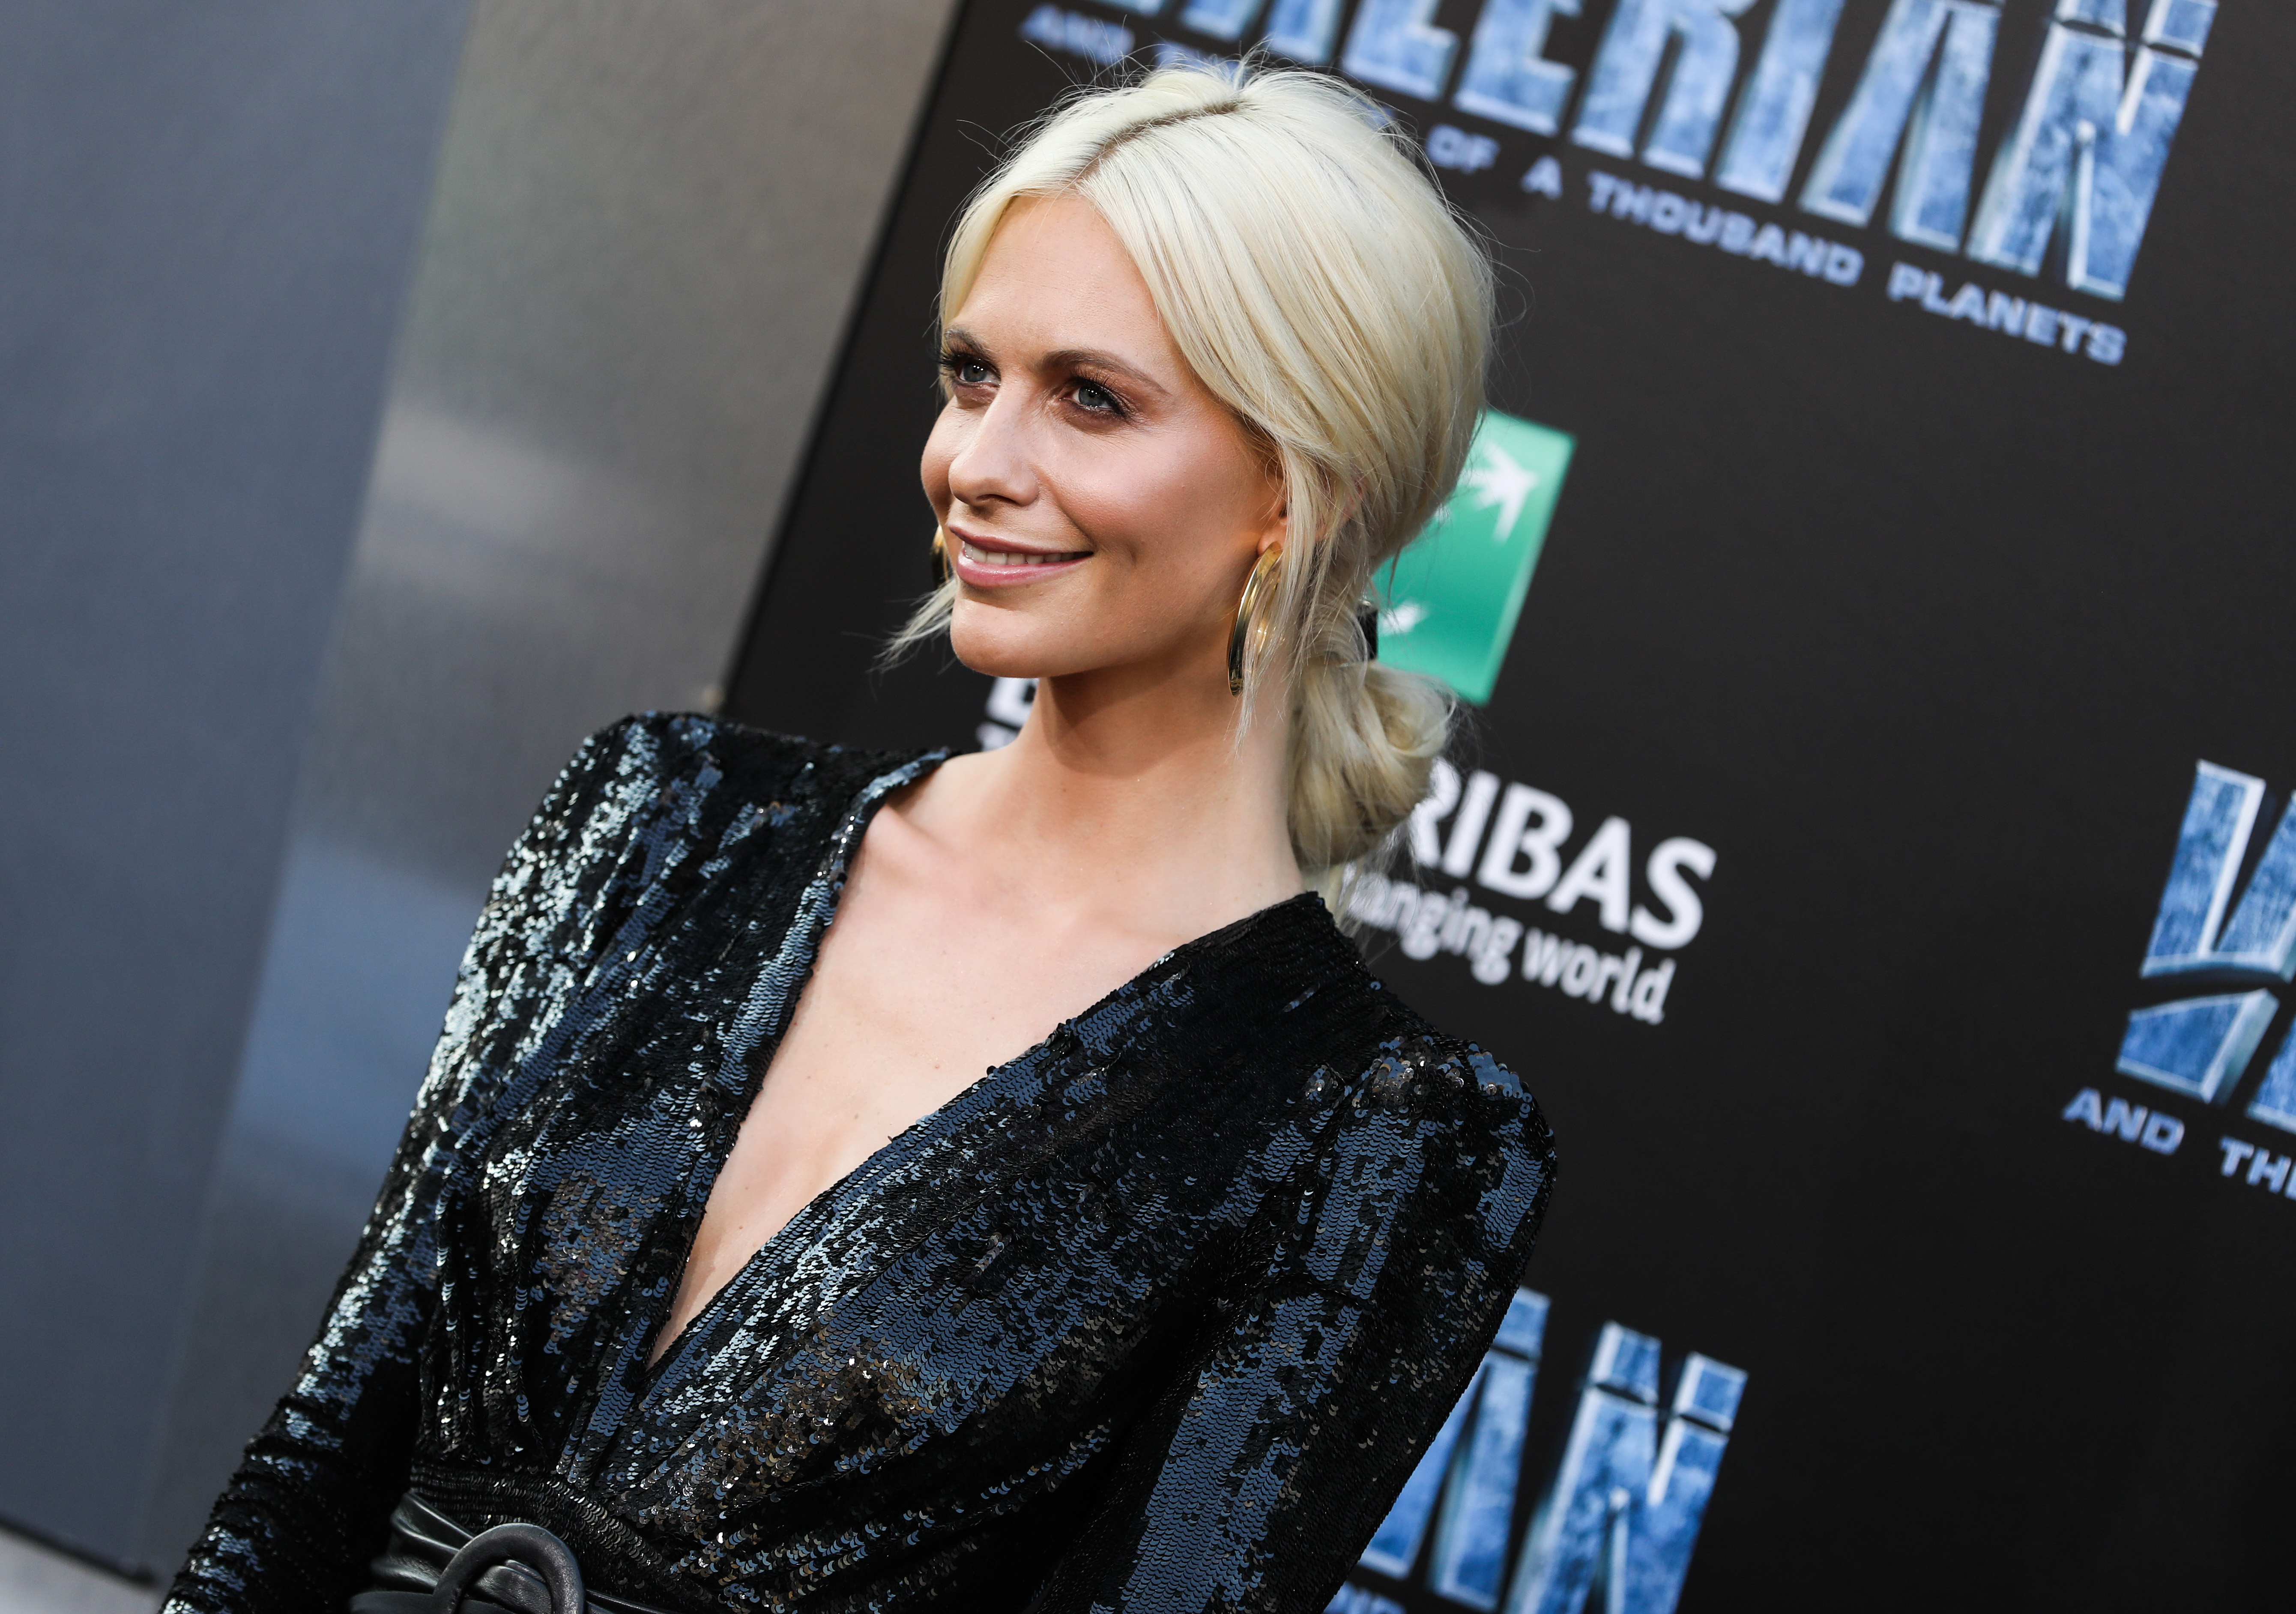 Poppy Delevingne'Valerian and The City of a Thousand Planets' film premiere, Arrivals, Los Angeles, USA - 17 Jul 2017